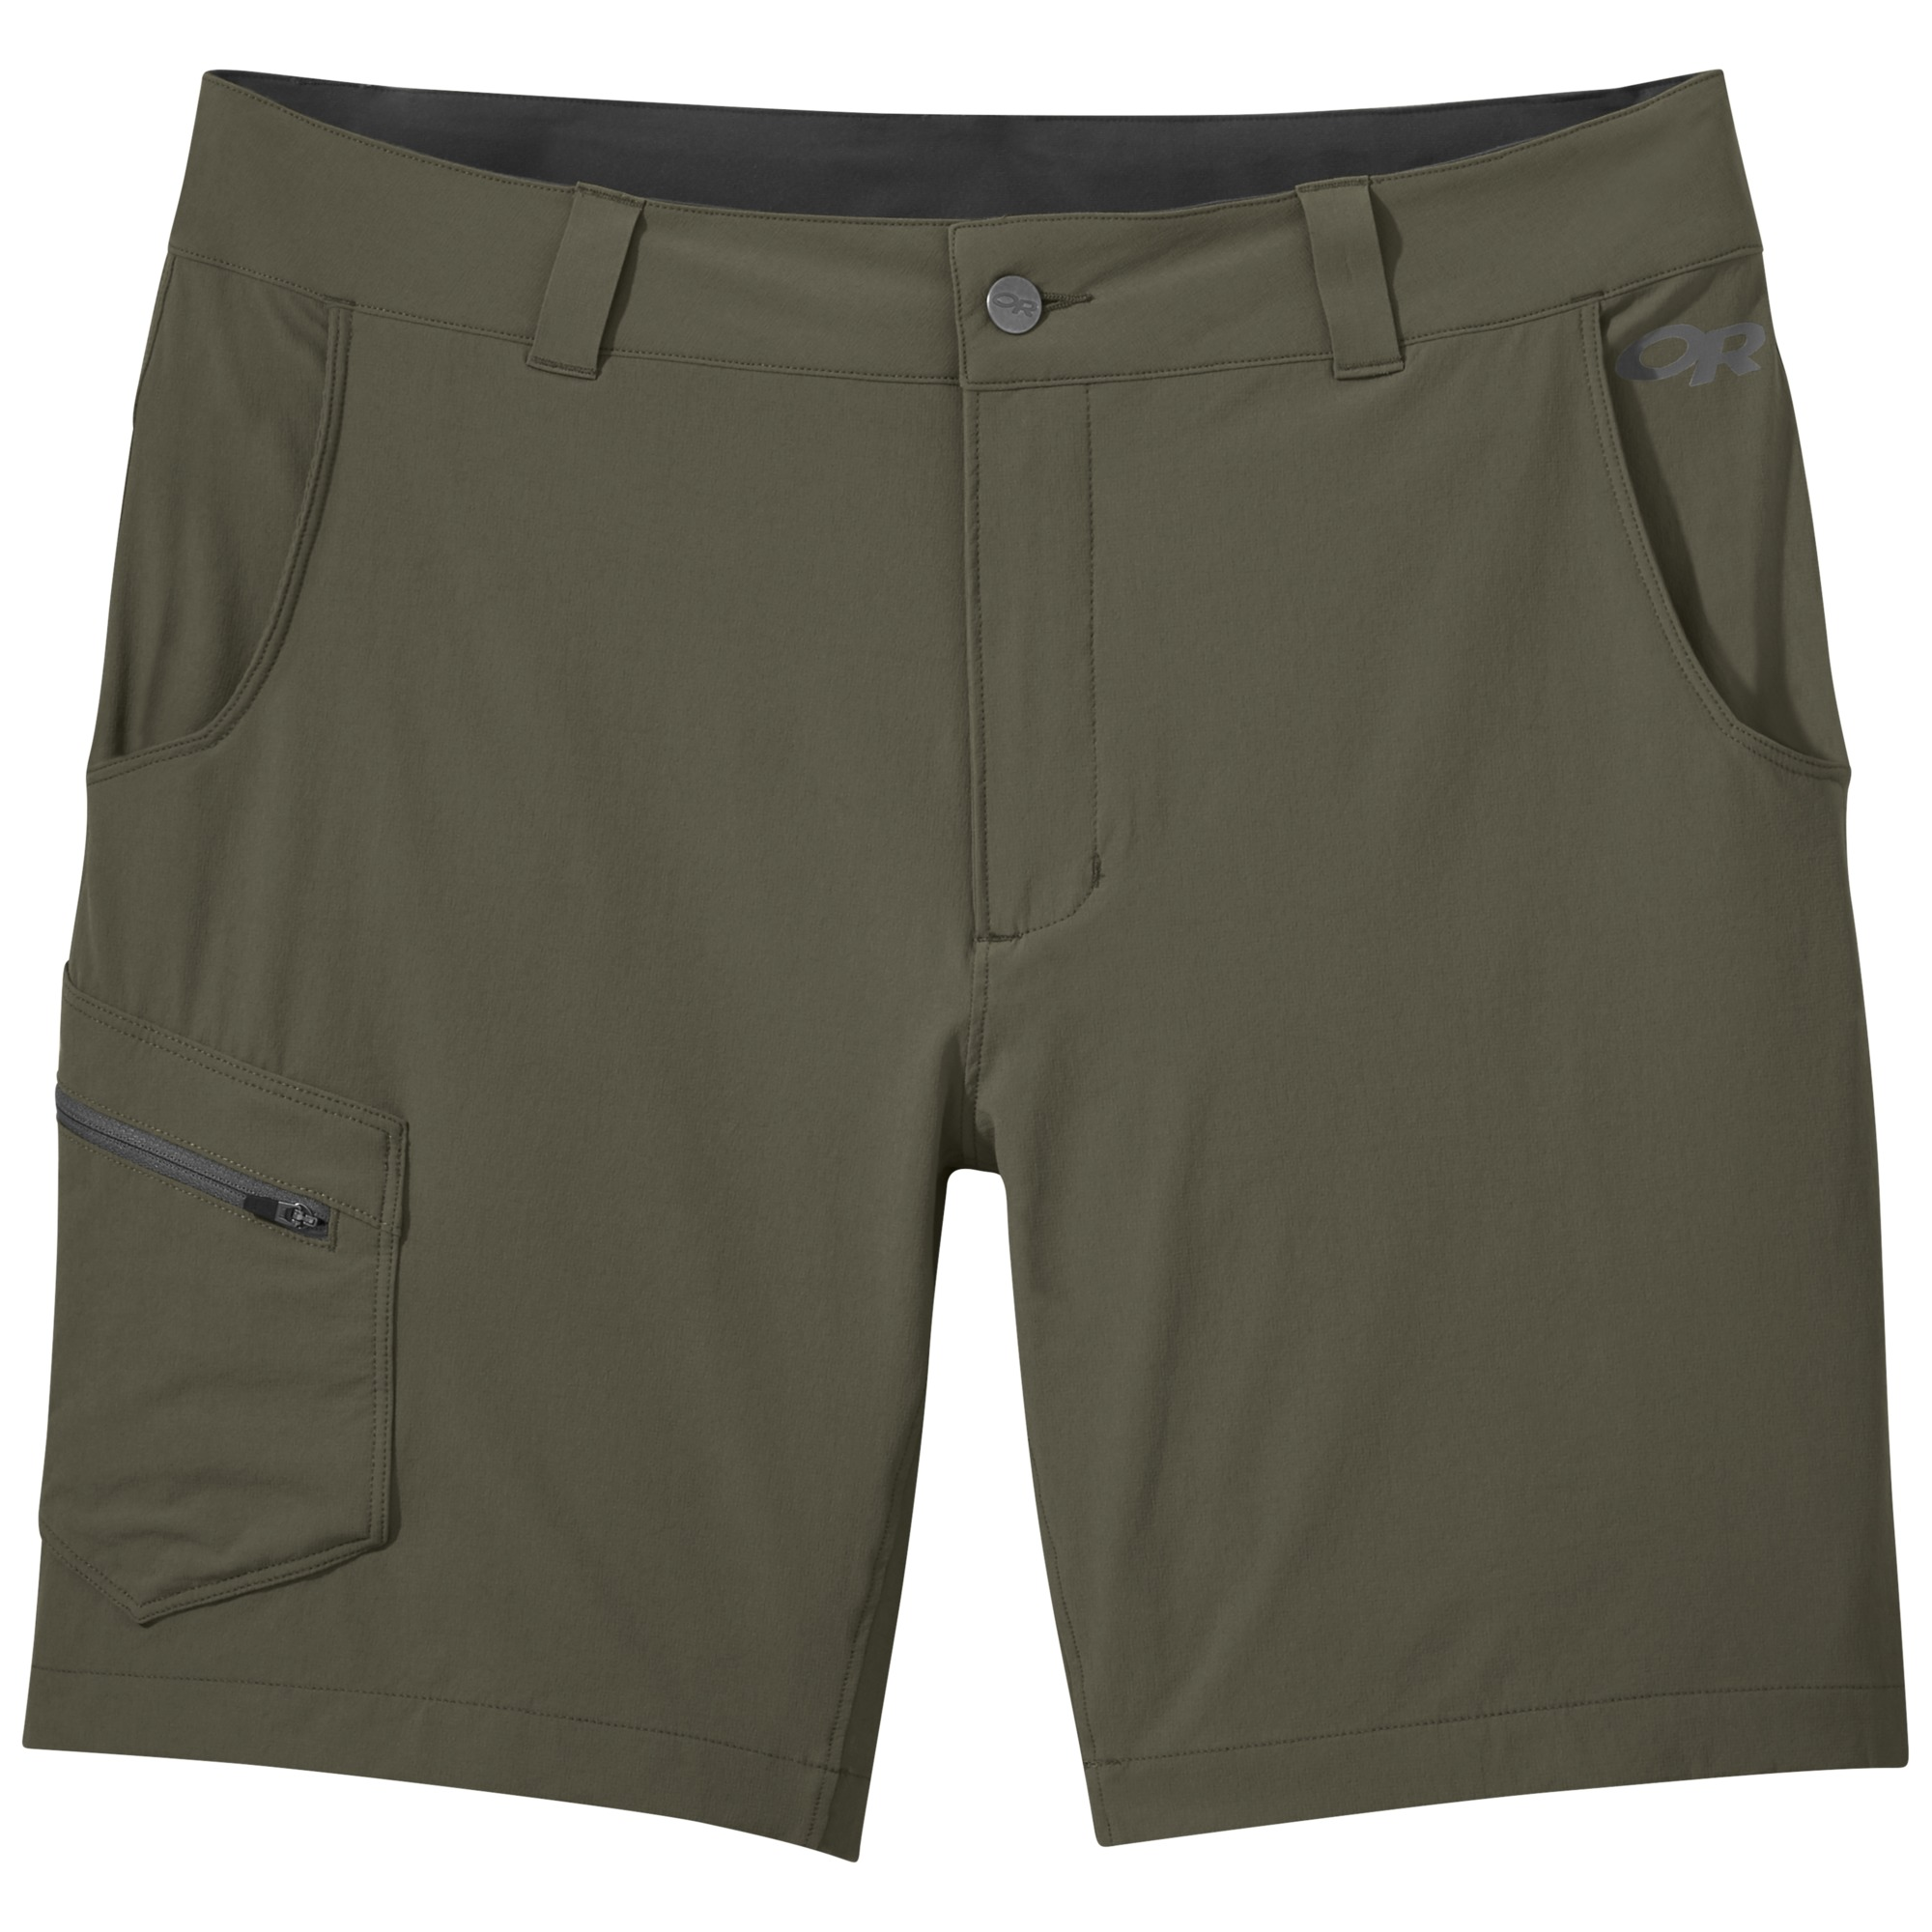 a3491edd84276 Outdoor Research Ferrosi Shorts - Mens with Free S&H — CampSaver